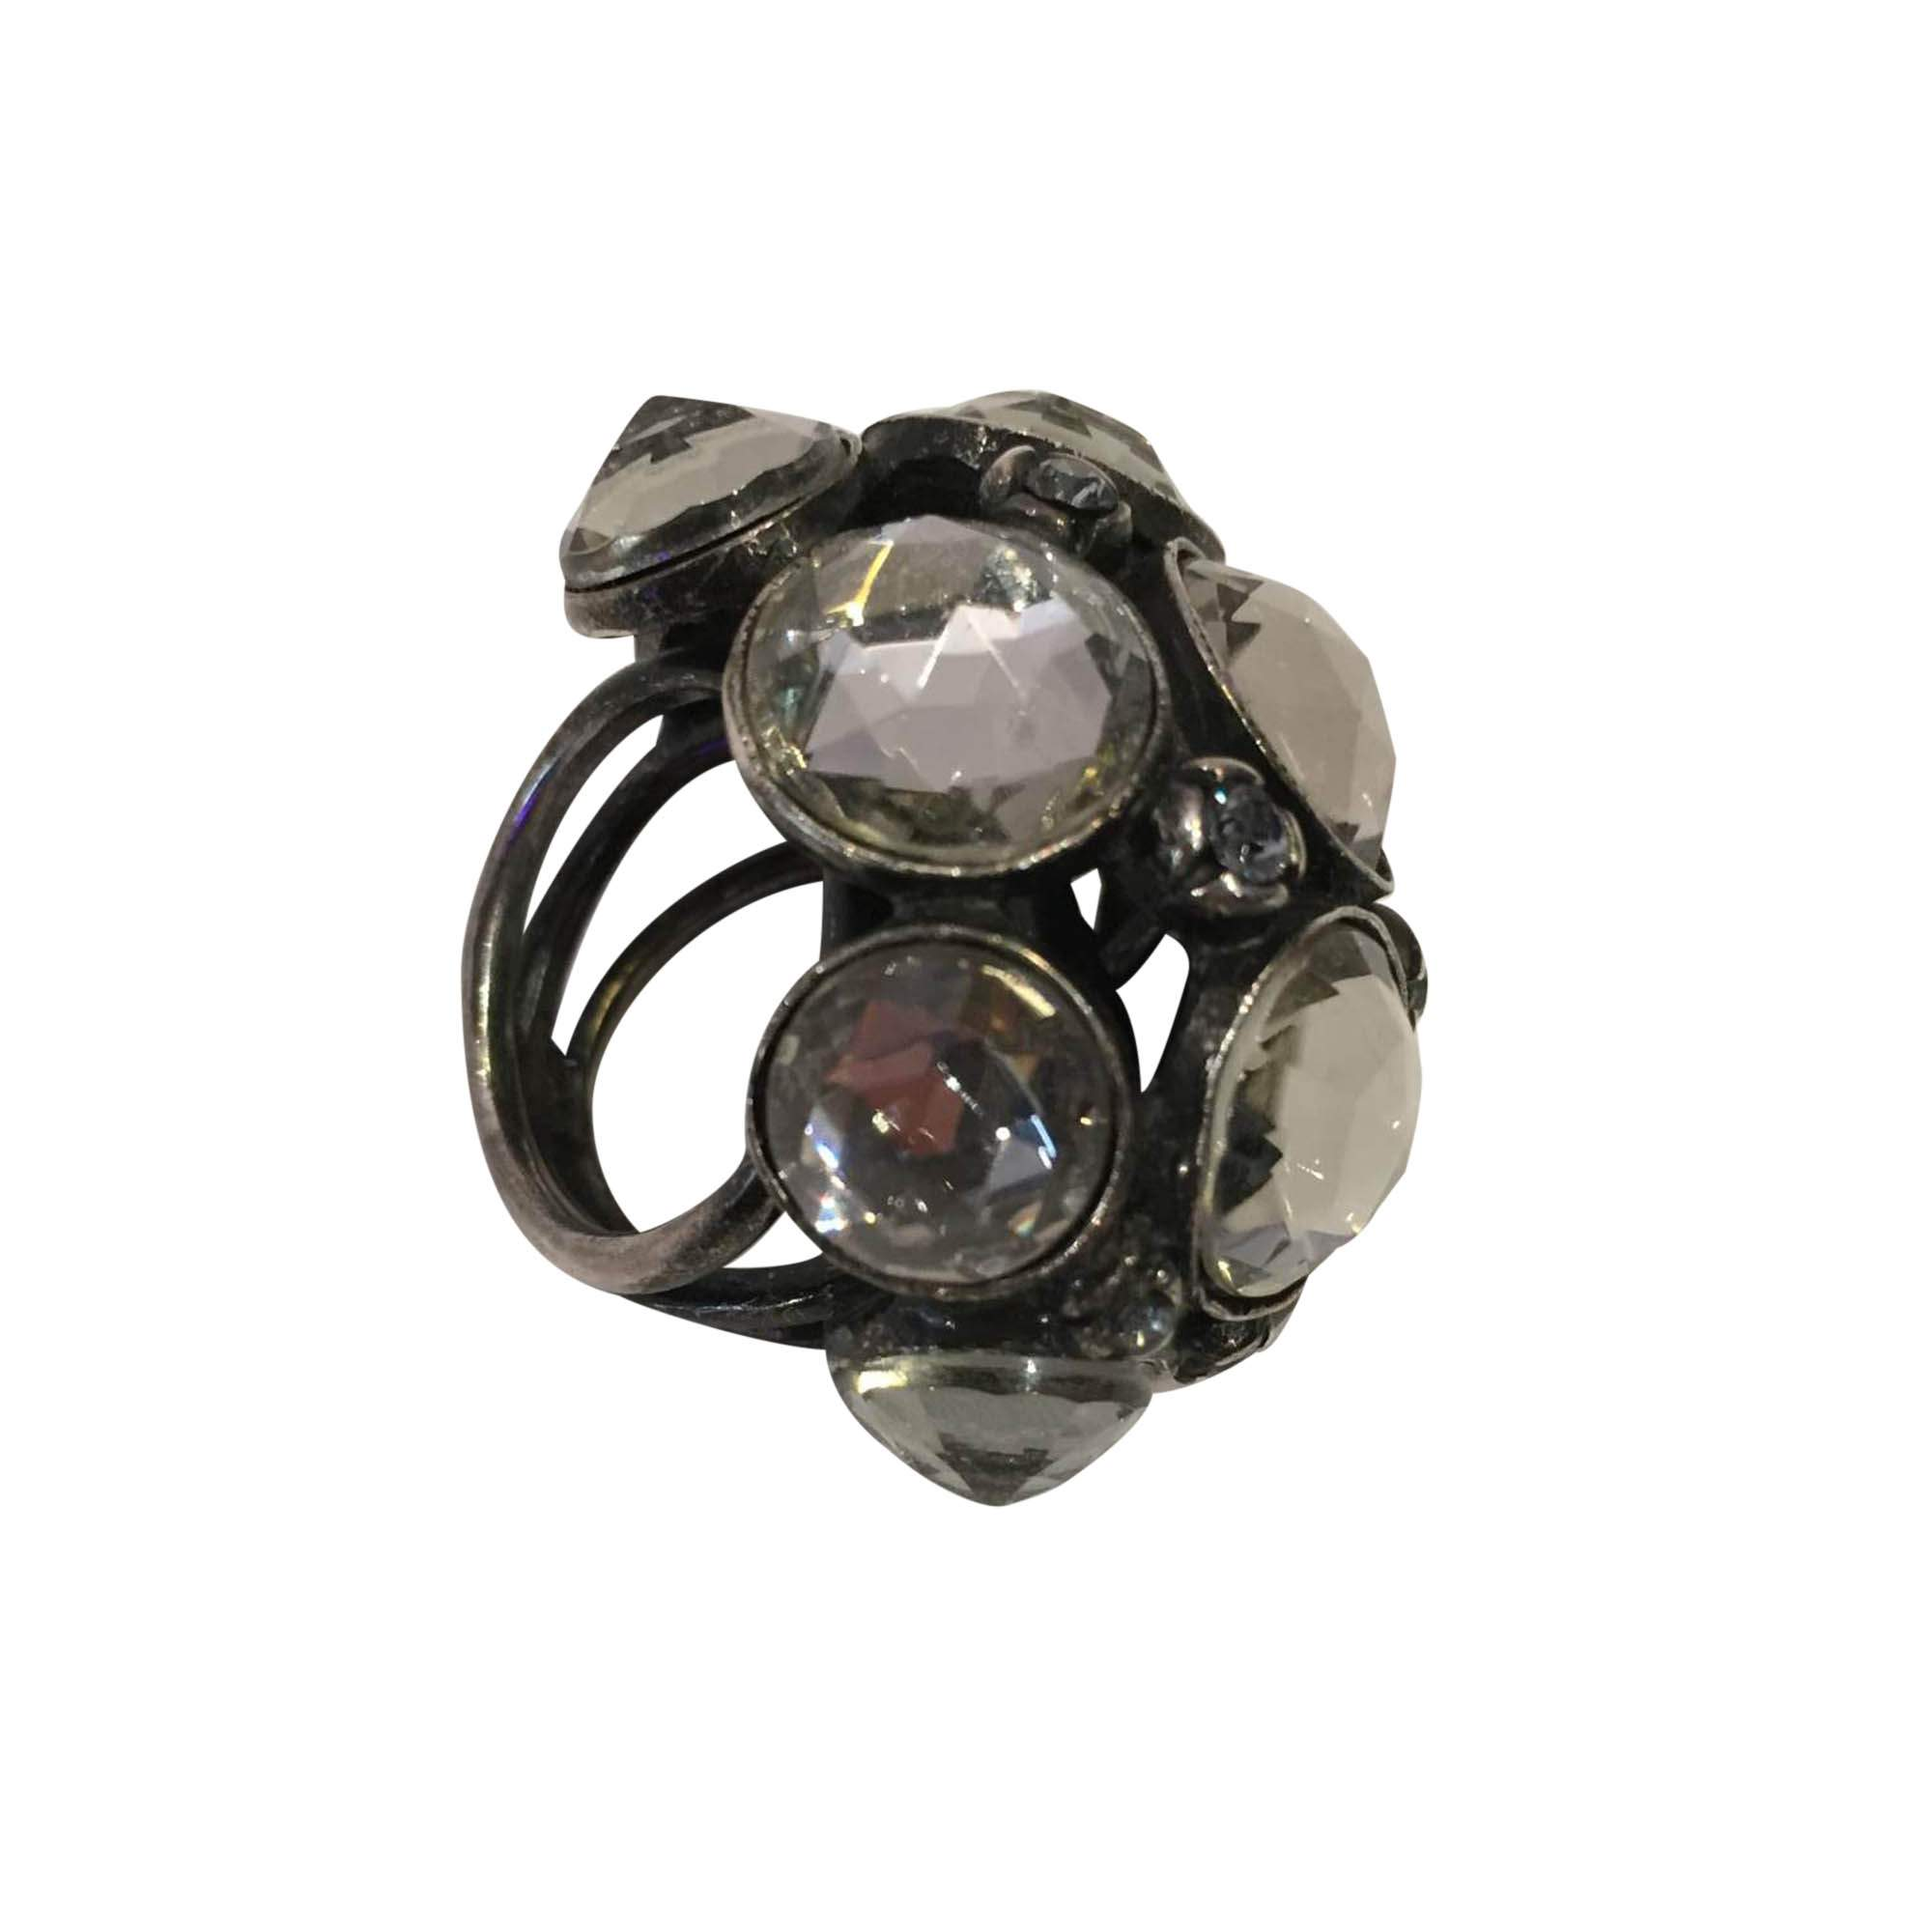 Very nice Ring in metal and rhinestones Lanvin | The Chic Selection